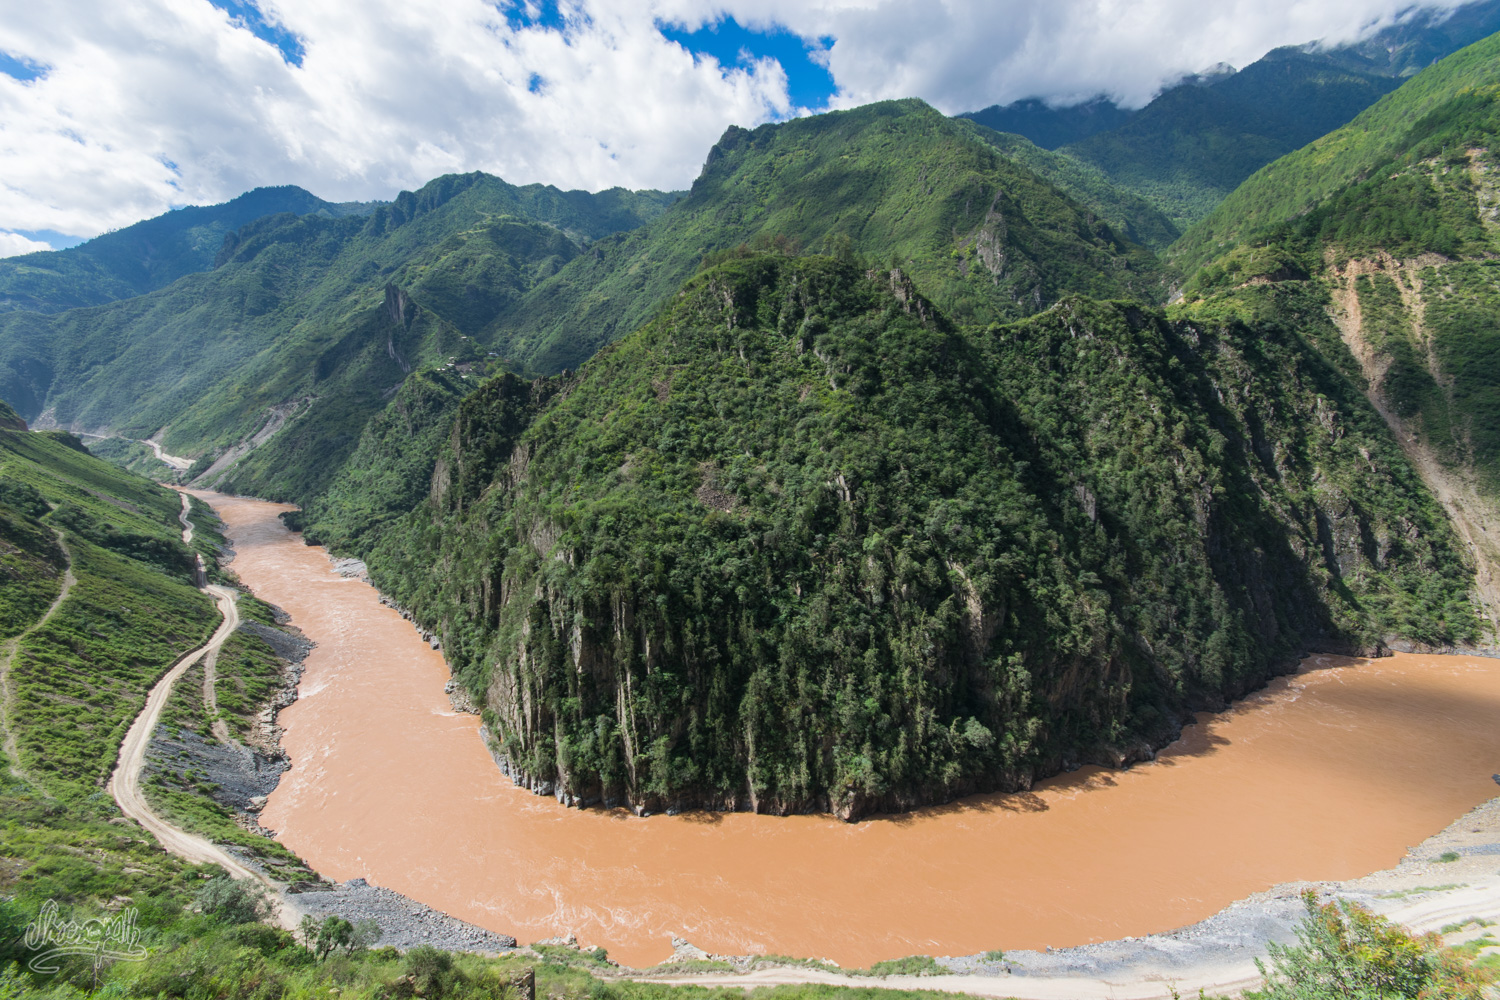 The Mekong gorges, a few kilometers after Cizhong